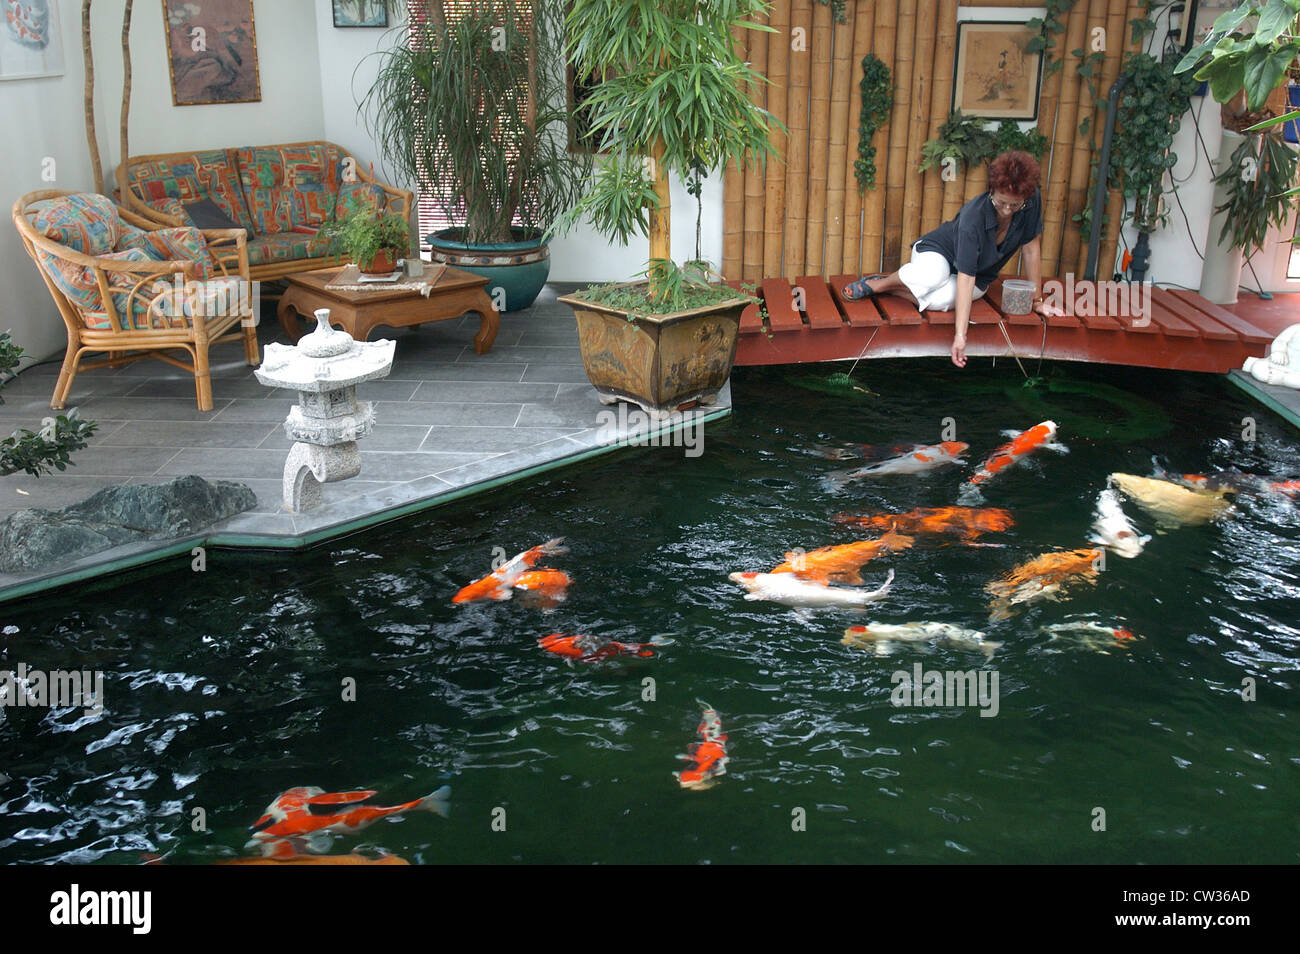 Indoor koi pond in reigoldswil switzerland stock photo for Indoor koi pool